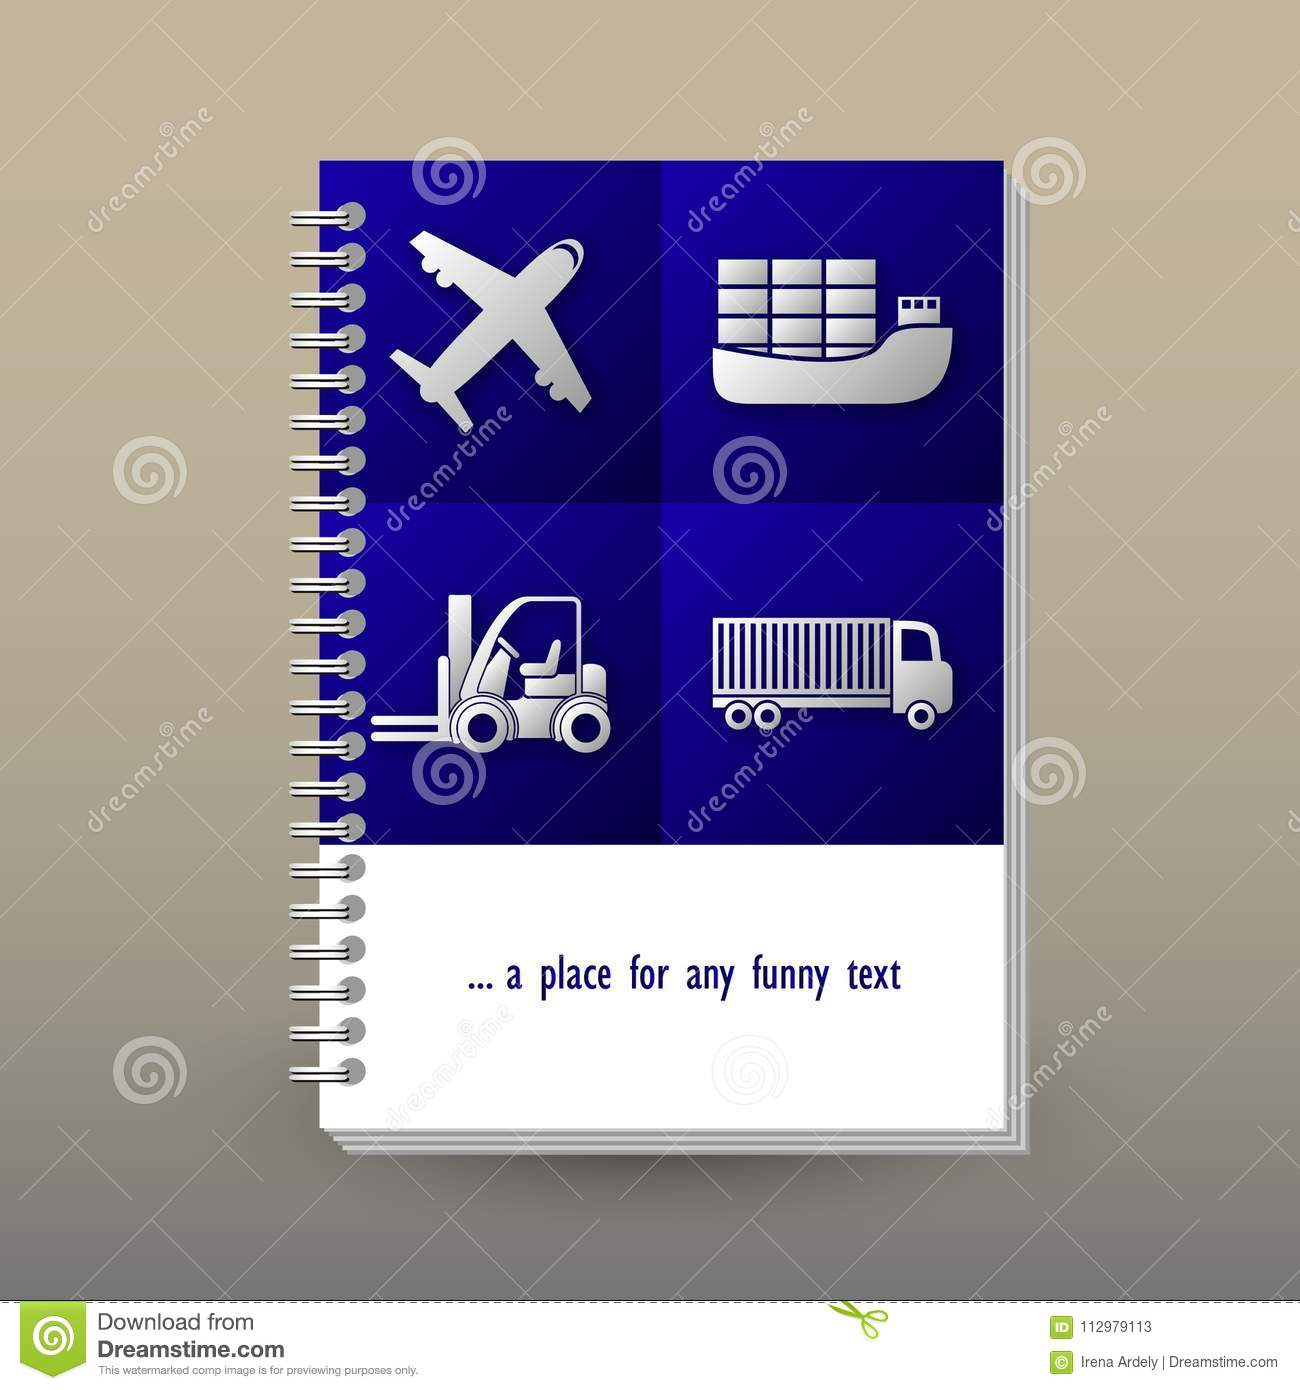 Vector cover of diary with ring spiral binder - format A5 - layout brochure concept - vibrant blue colored with gray t